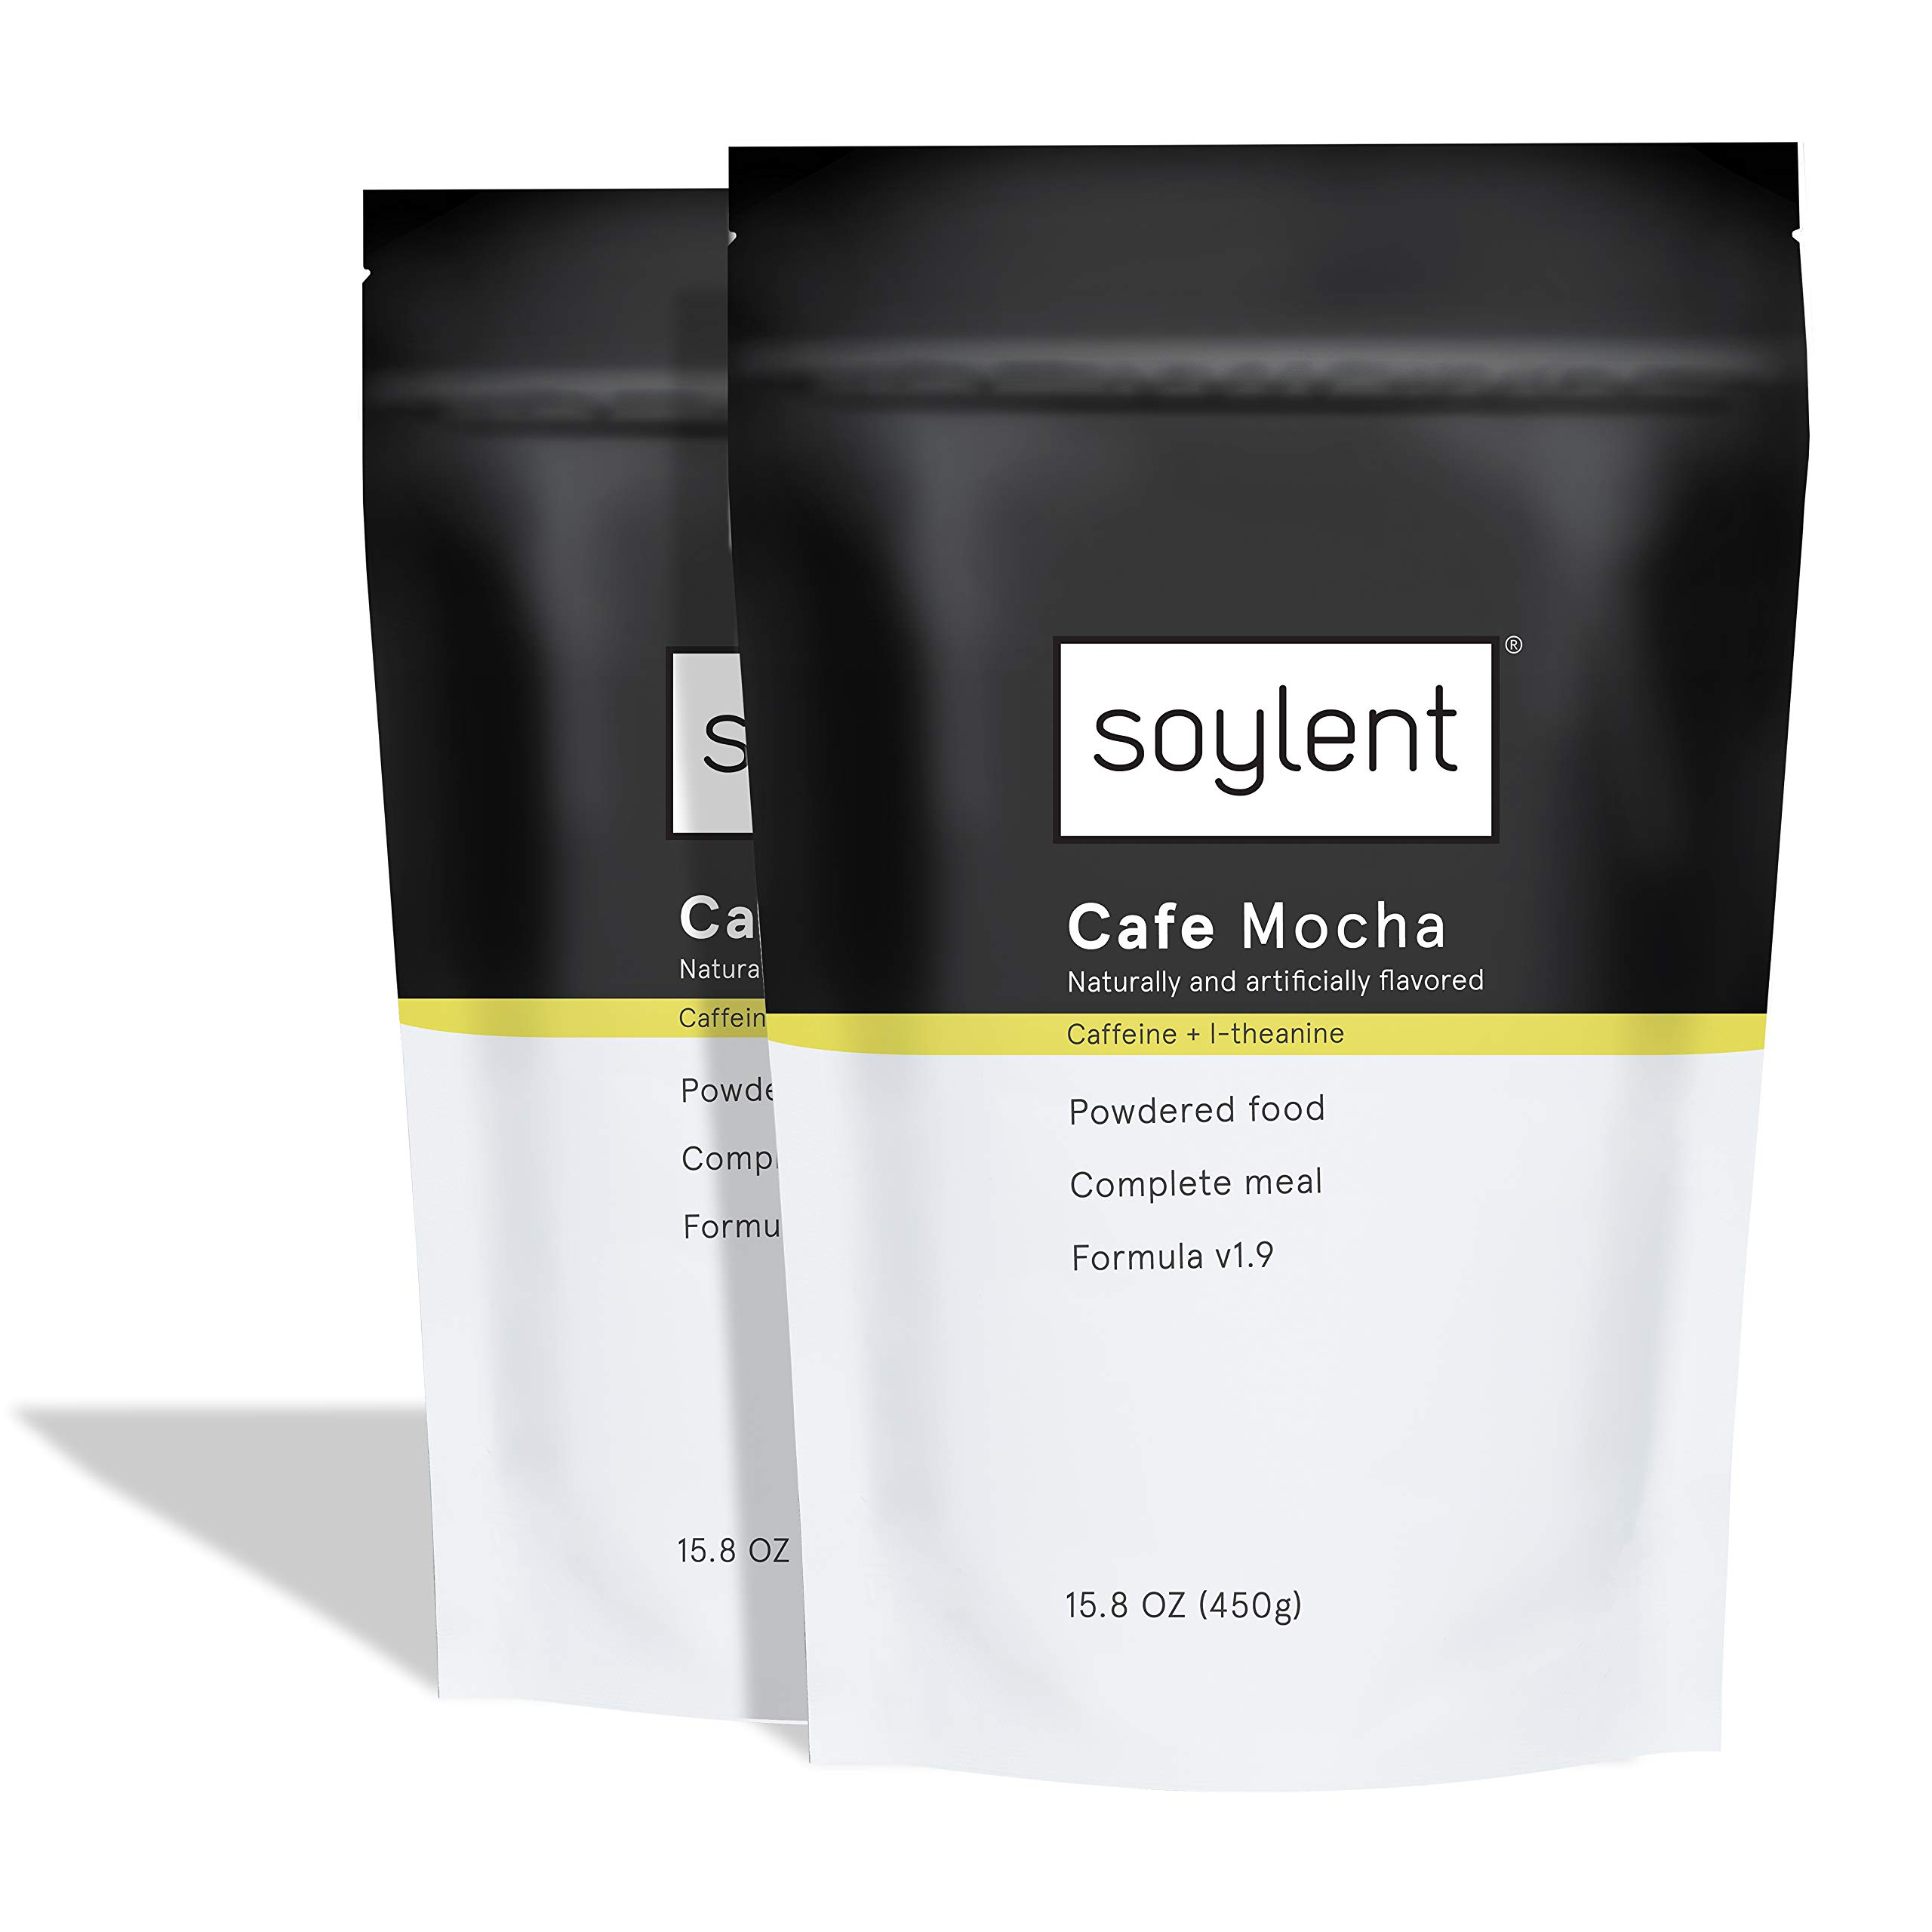 Soylent Cafe Mocha Meal Replacement Powder / Protein Powder, 2 Count Pouch, 15.8 Ounce (Pack of 2) by Soylent